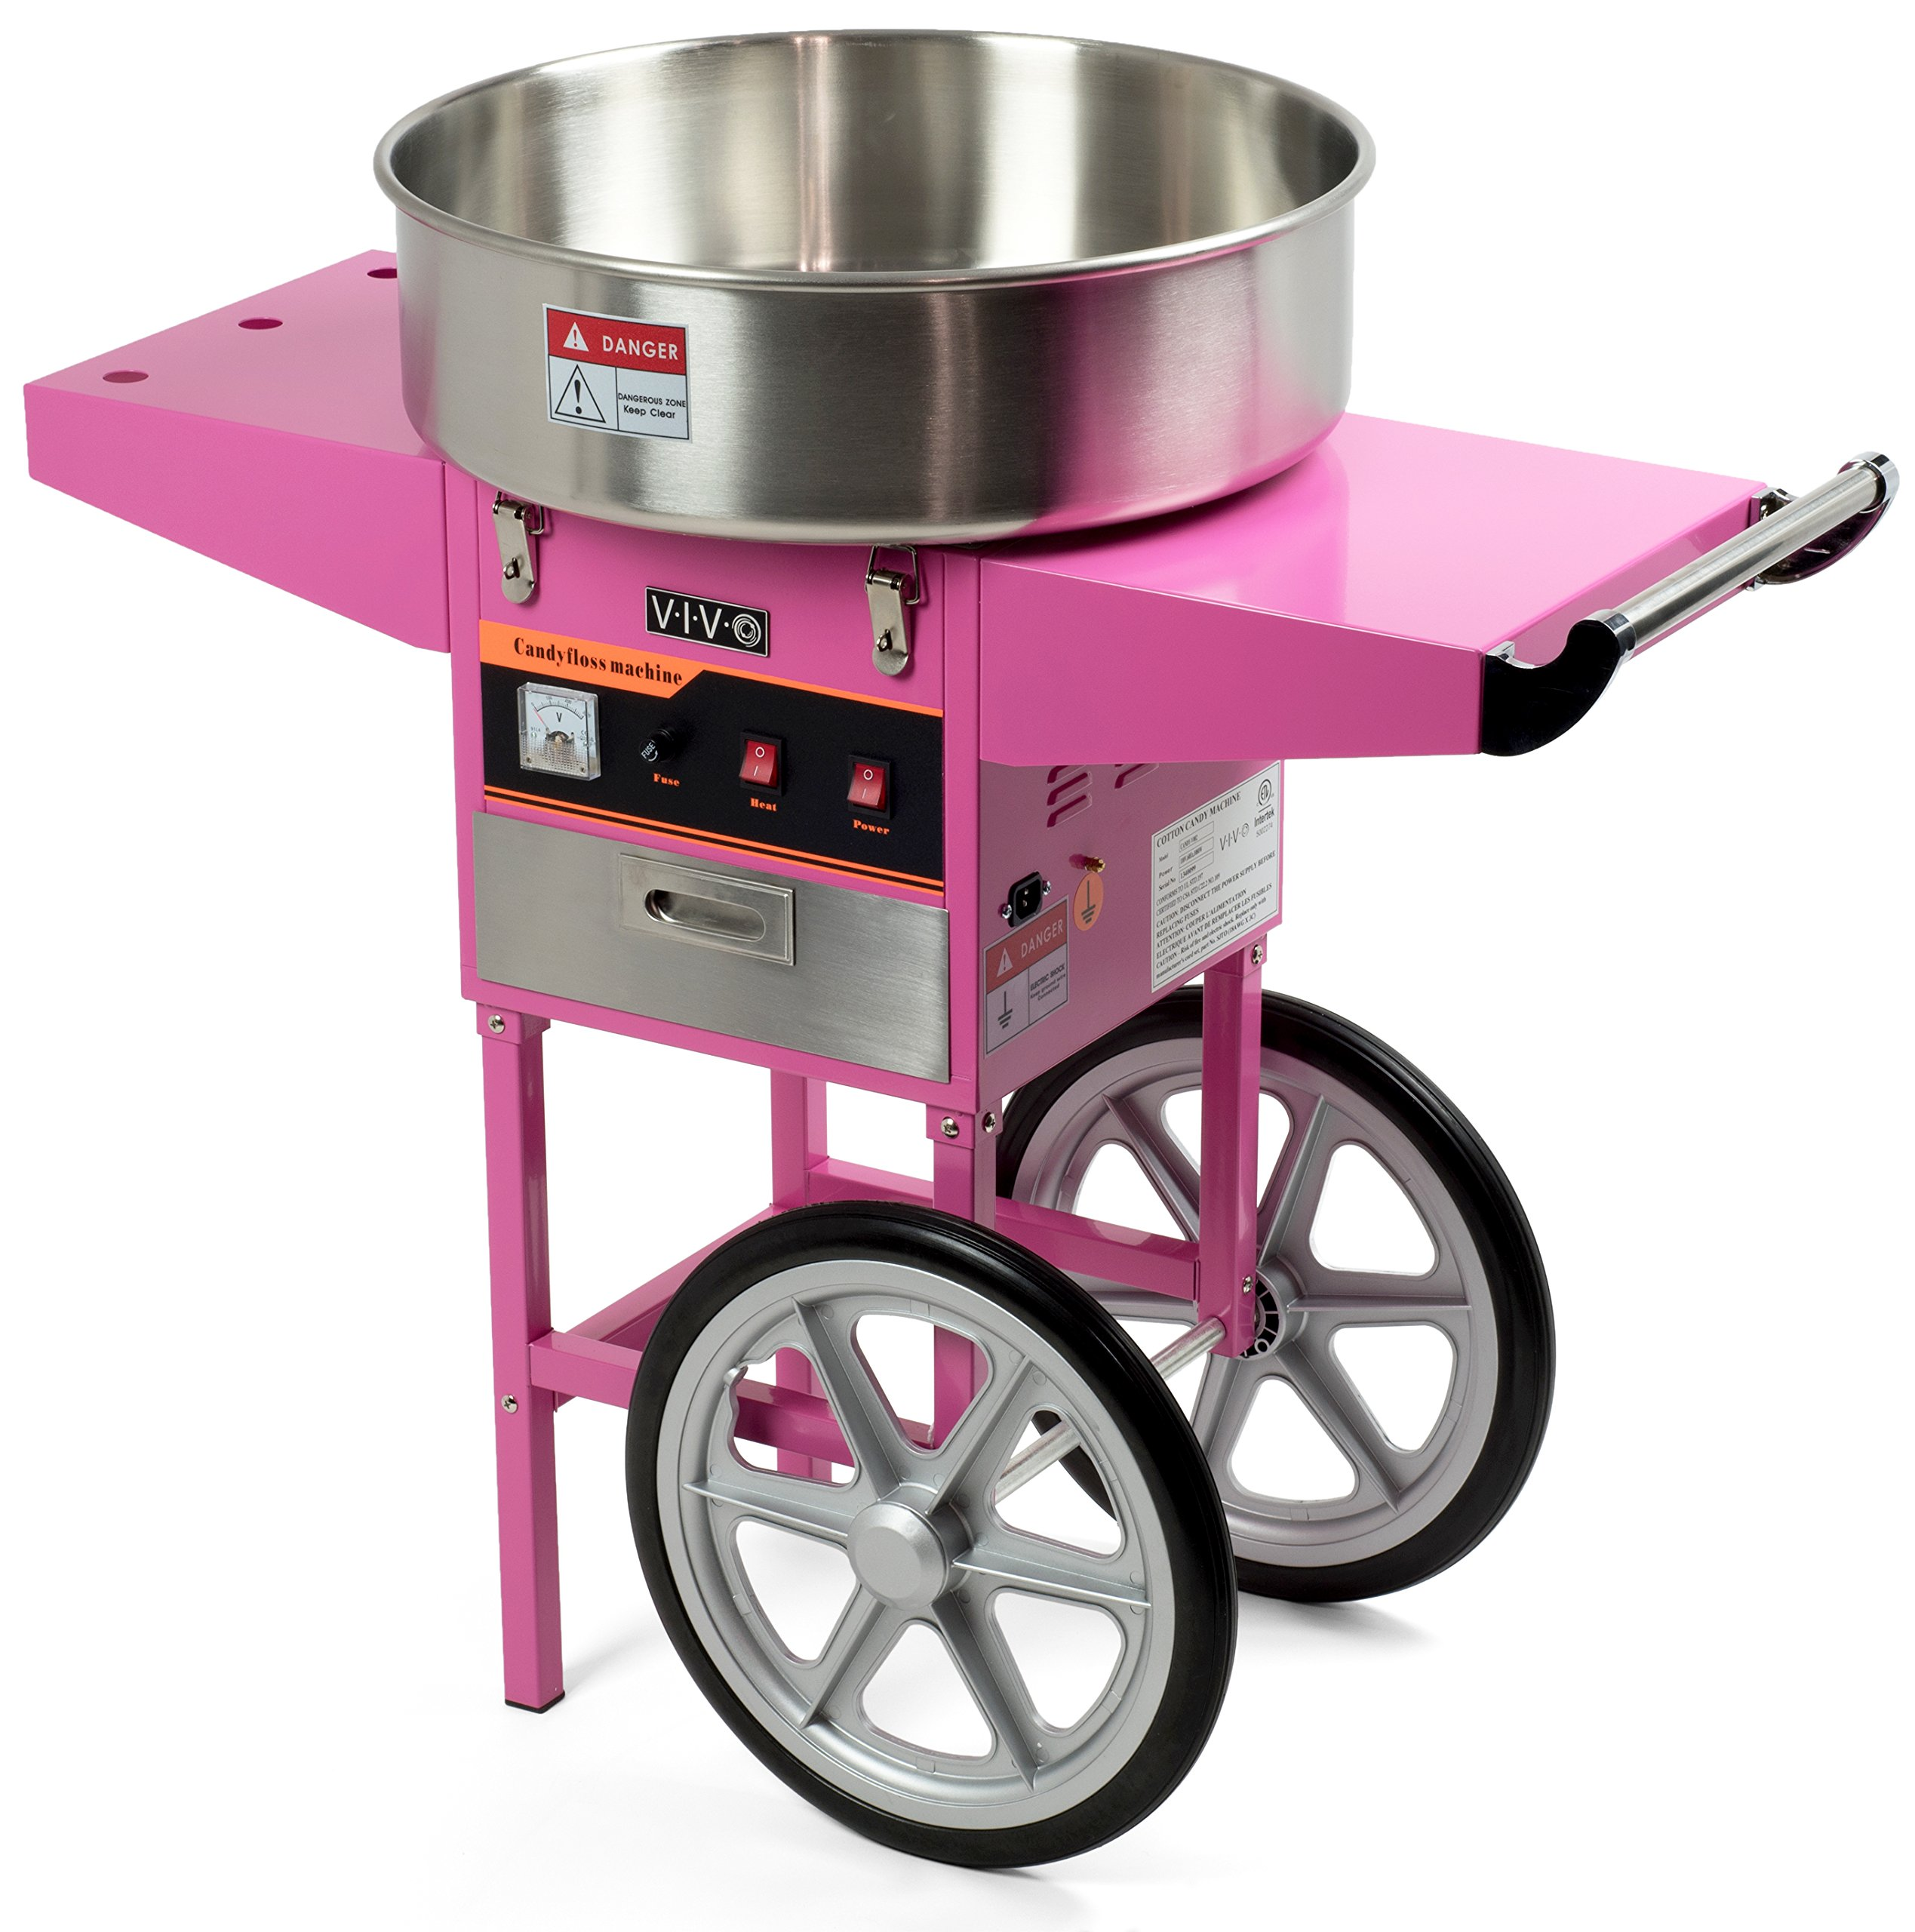 Electric Commercial Cotton Candy Machine / Candy Floss Maker Pink Cart Stand VIVO (CANDY-V002)